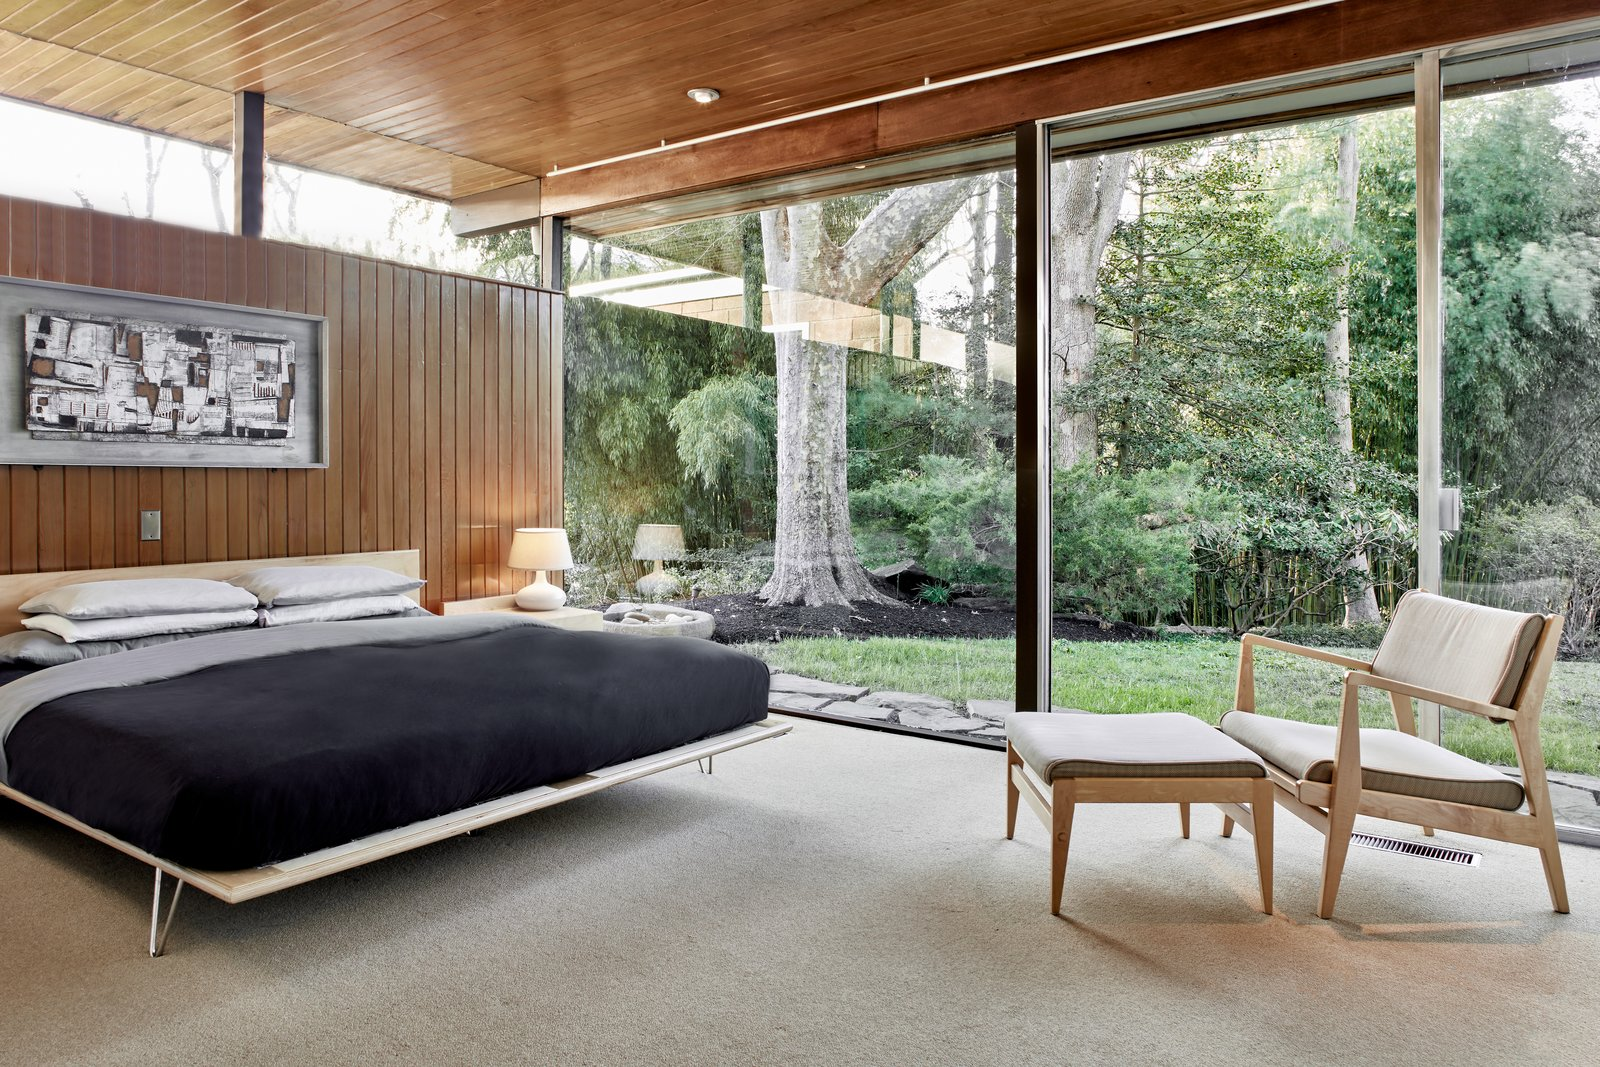 Bedroom, Bed, Carpet Floor, Chair, and Ceiling Lighting  Best Photos from The Stunningly Restored Hassrick Residence by Richard Neutra Hits the Market at $2.2M